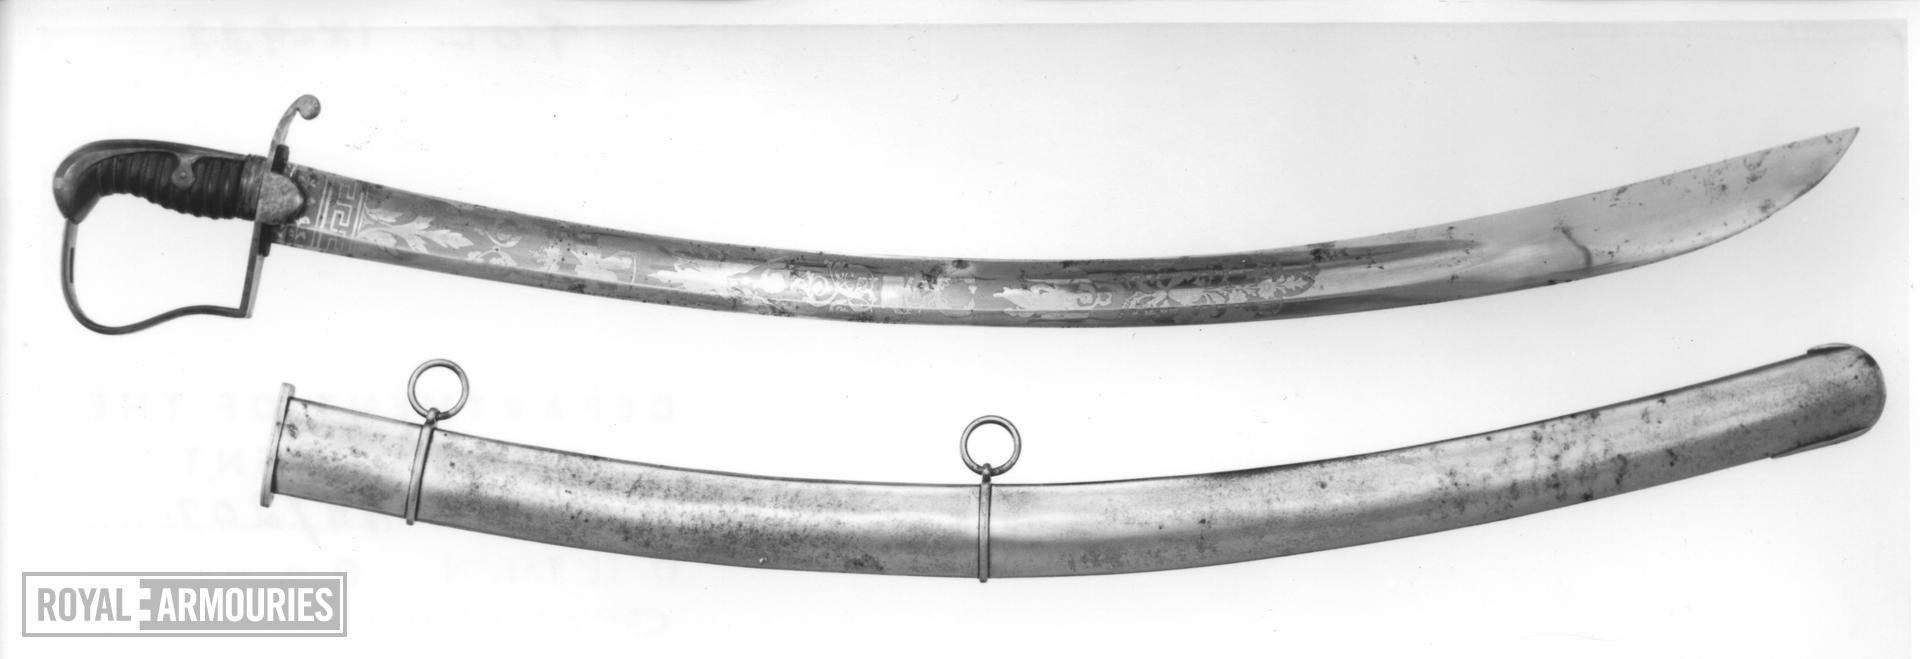 Sword and scabbard - Pattern 1796 Light Cavalry Officer's sword and scabbard